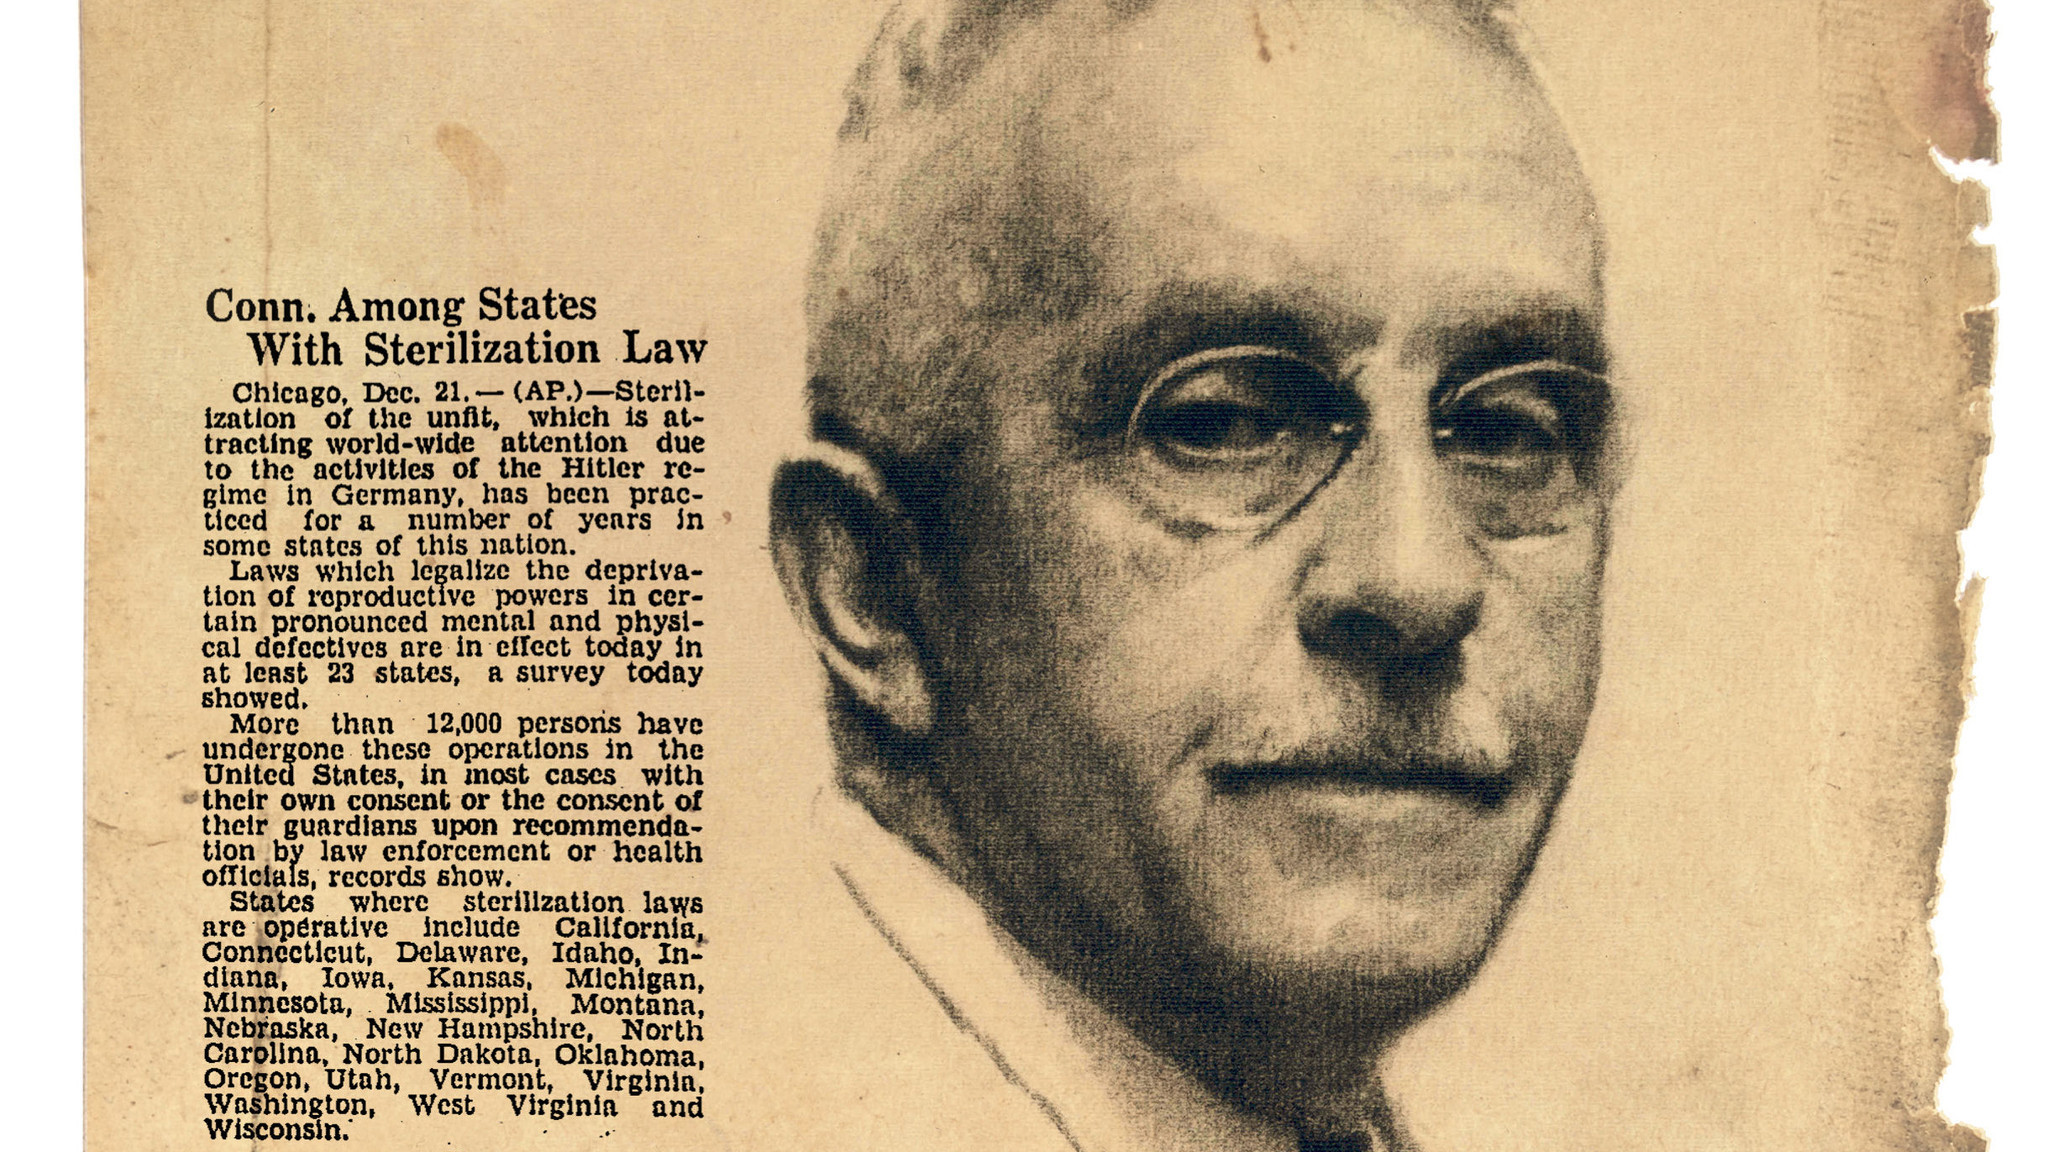 Page 63 Of The 1938 Survey's Final Report Stated That The Eugenic Mission Would €�determine The Racial Descent Of The Present Population Of  The State With